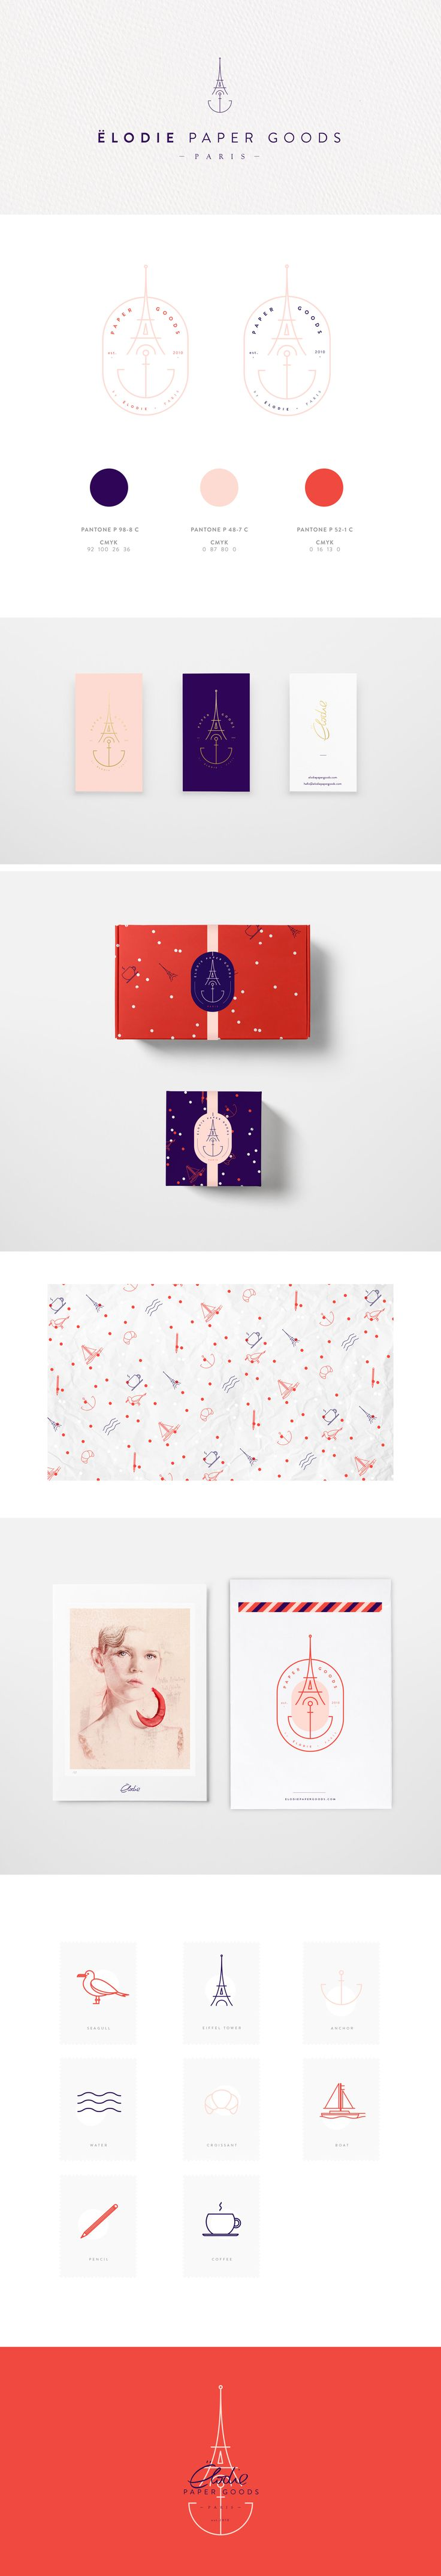 Elodie Paper Goods by Cocorrina